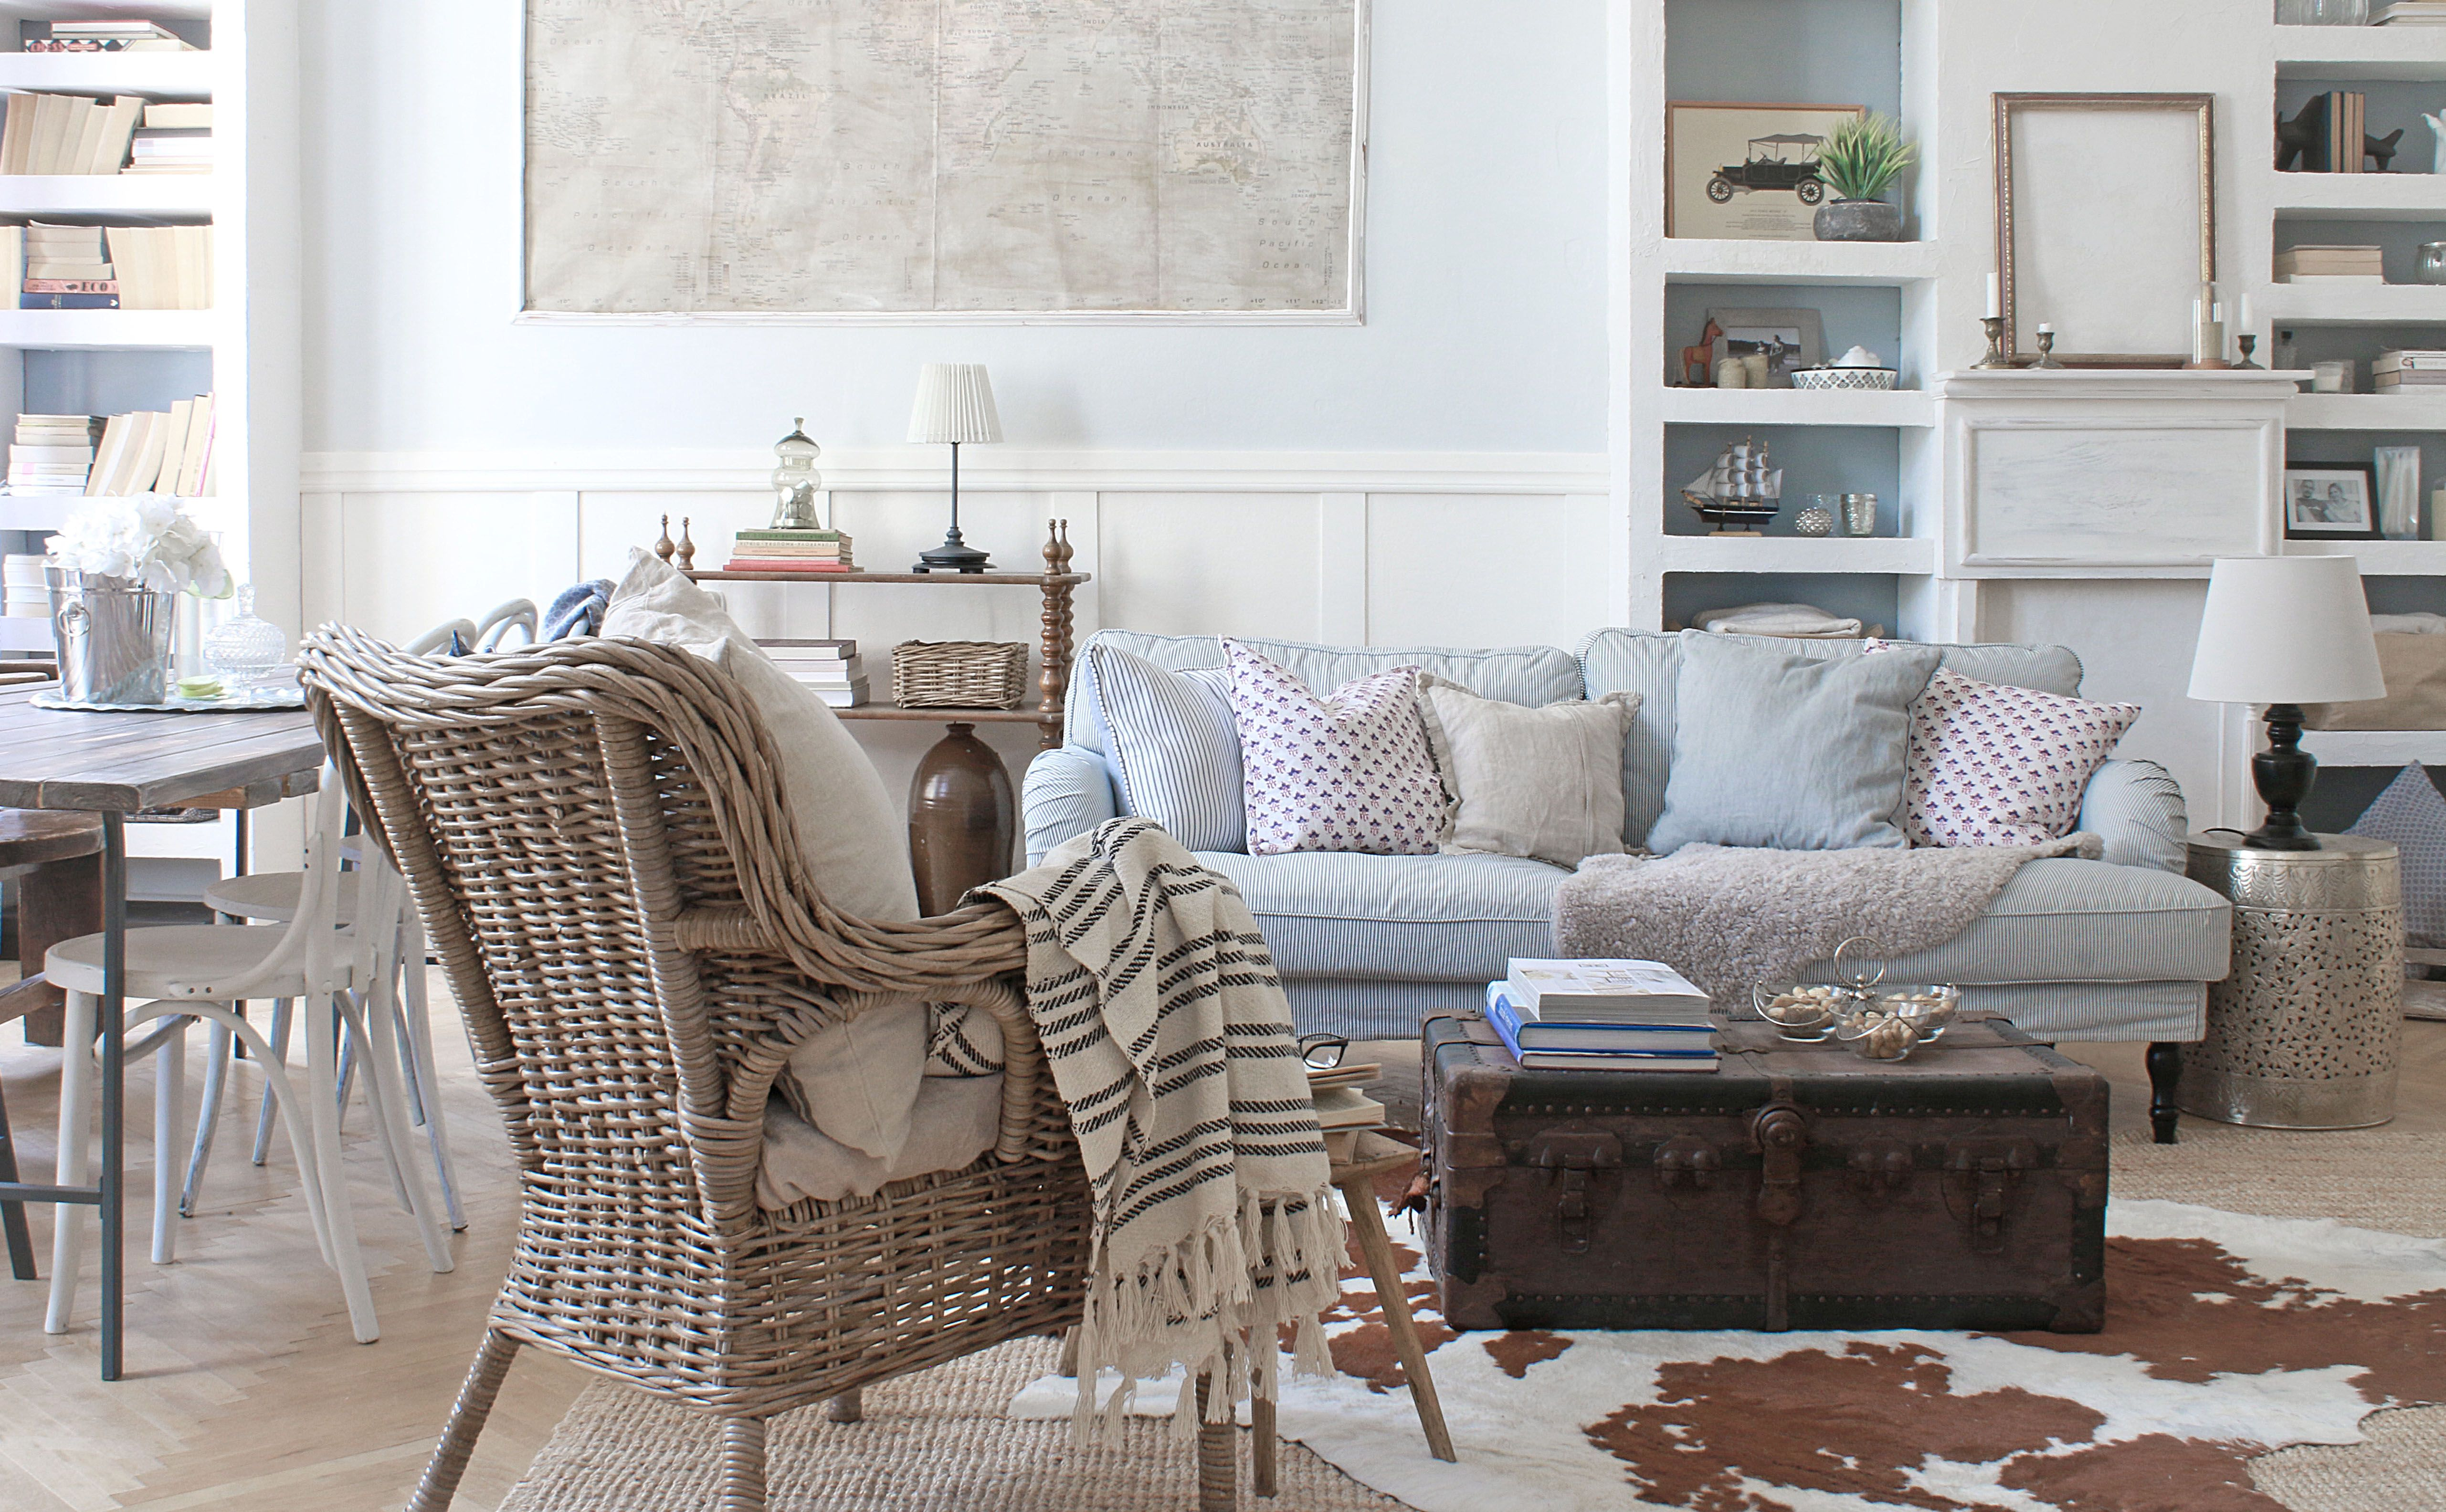 Scandinavian Style Living Room Wicker Chair Old Map Built In Bookshelves Faux Fireplace Scandinavian Style Chairs Living Room Chairs Outdoor Furniture Sets